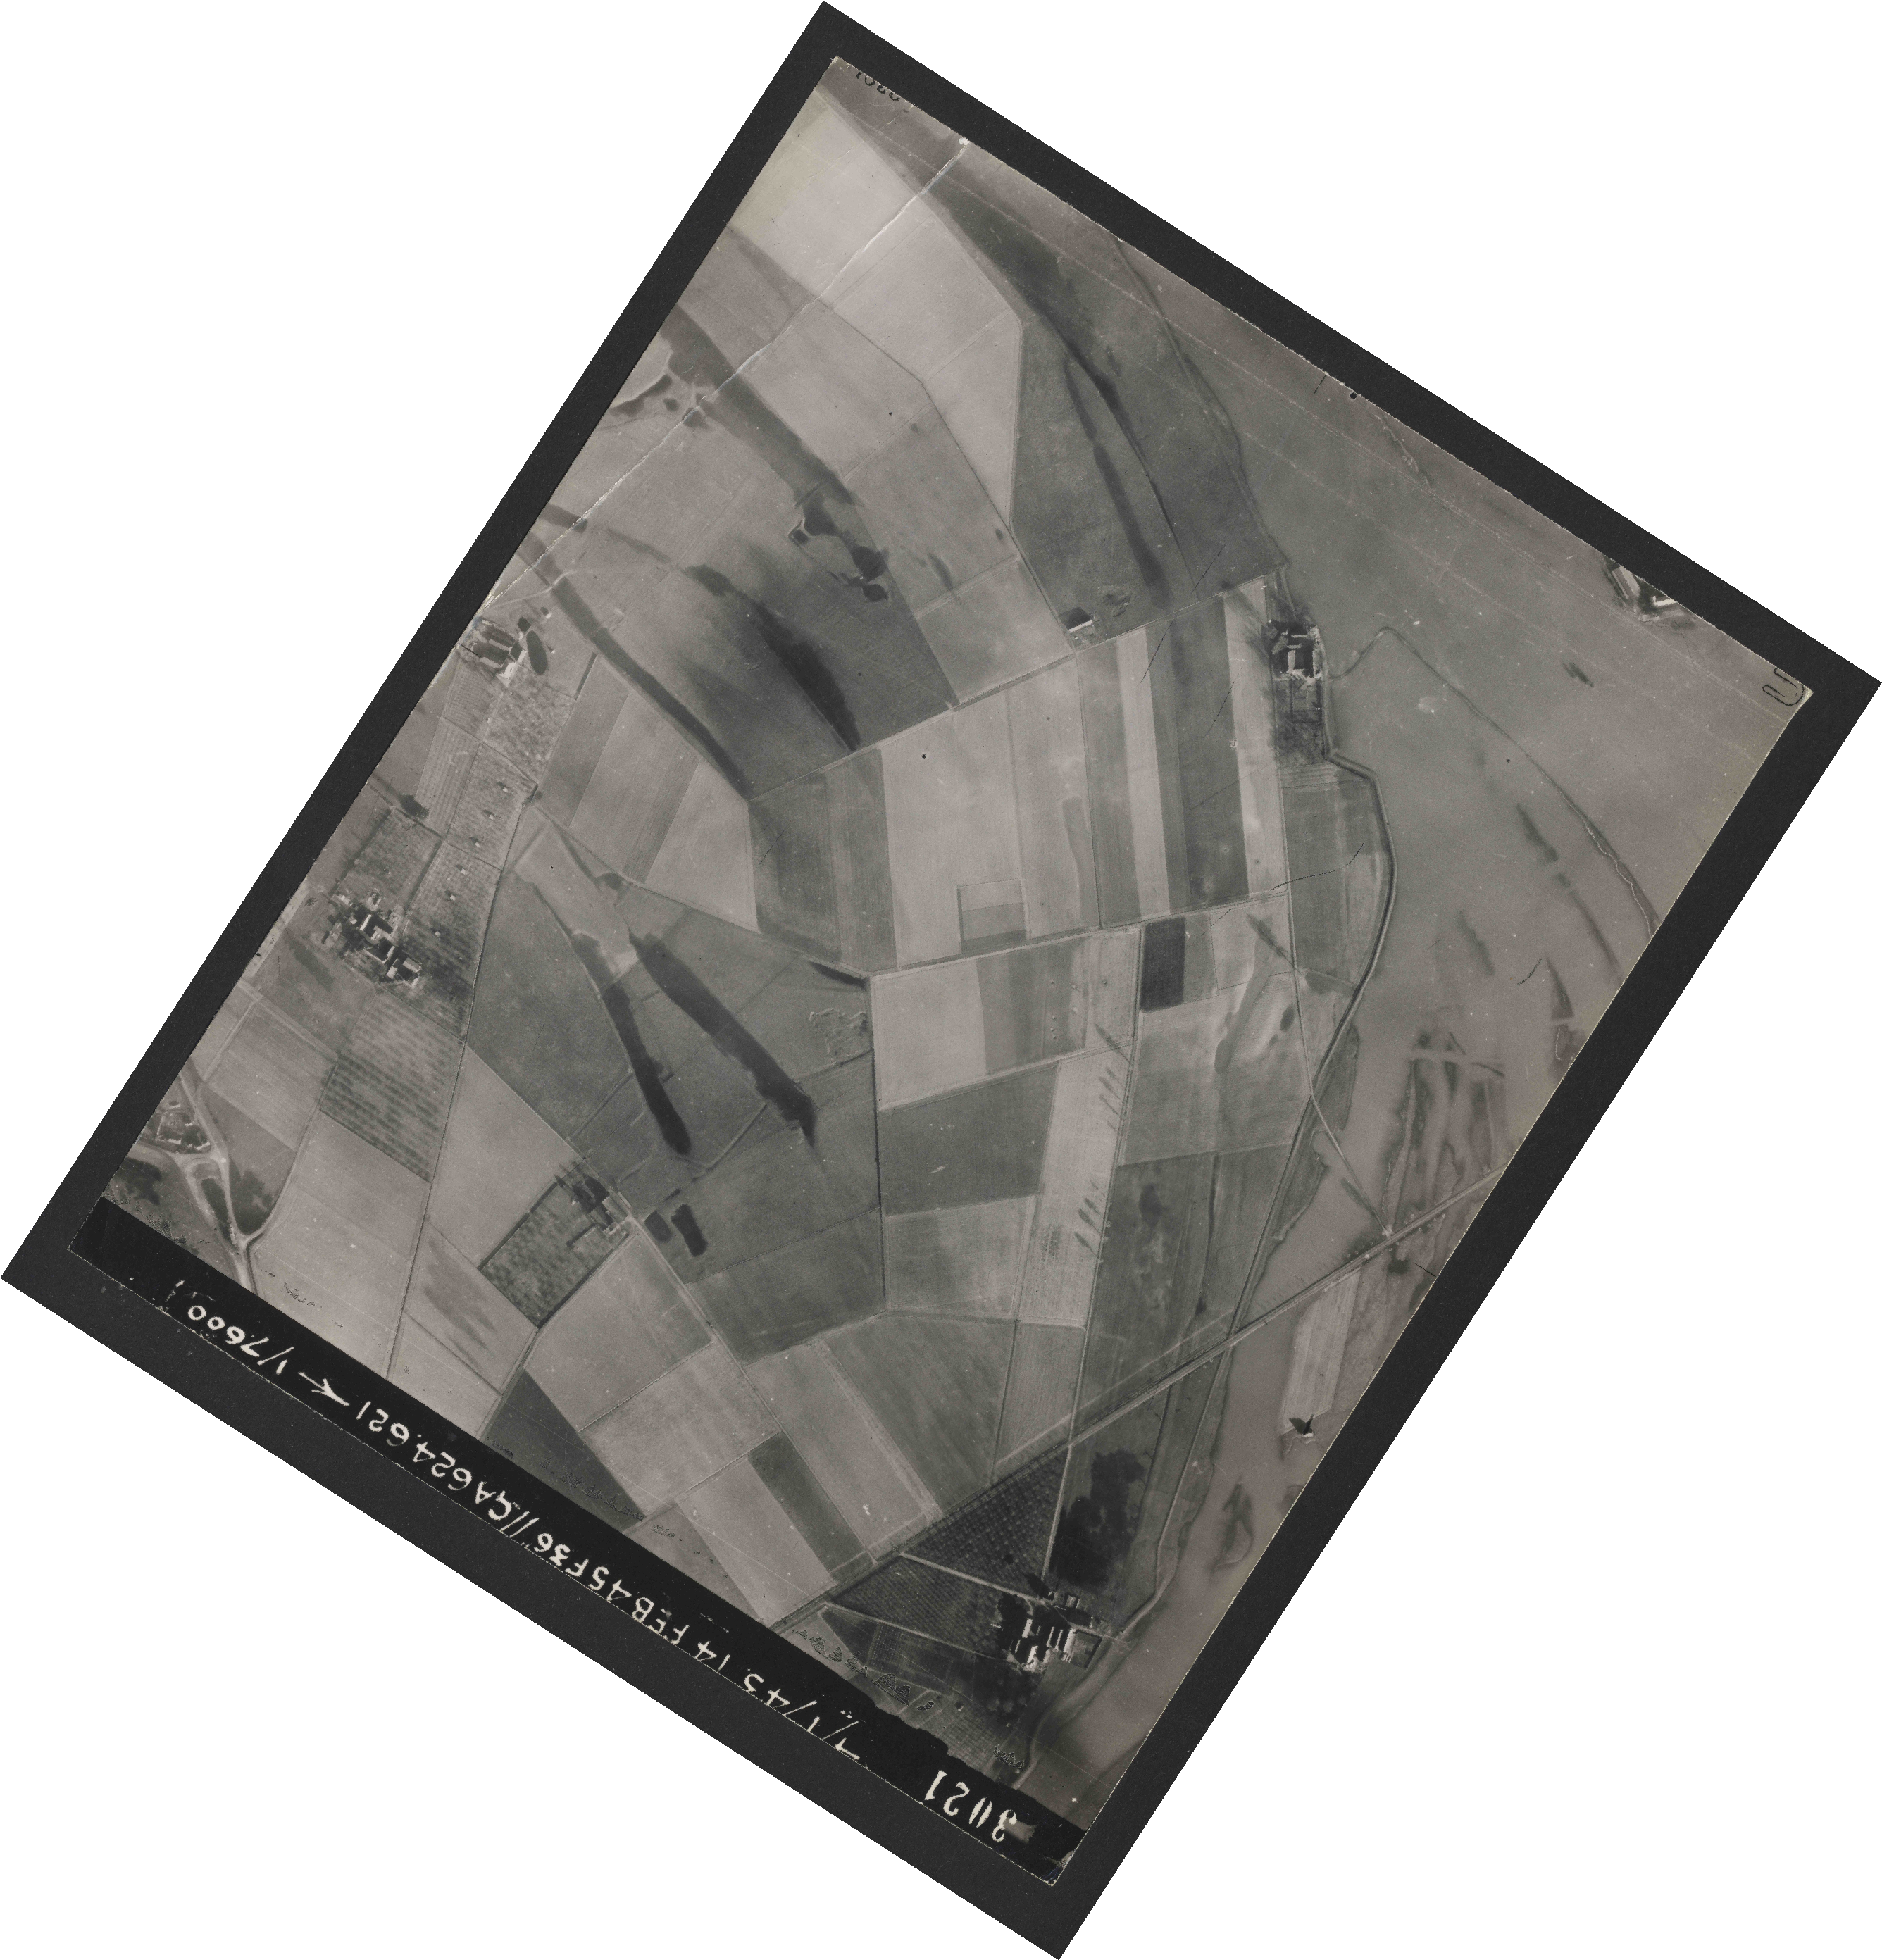 Collection RAF aerial photos 1940-1945 - flight 323, run 01, photo 3021